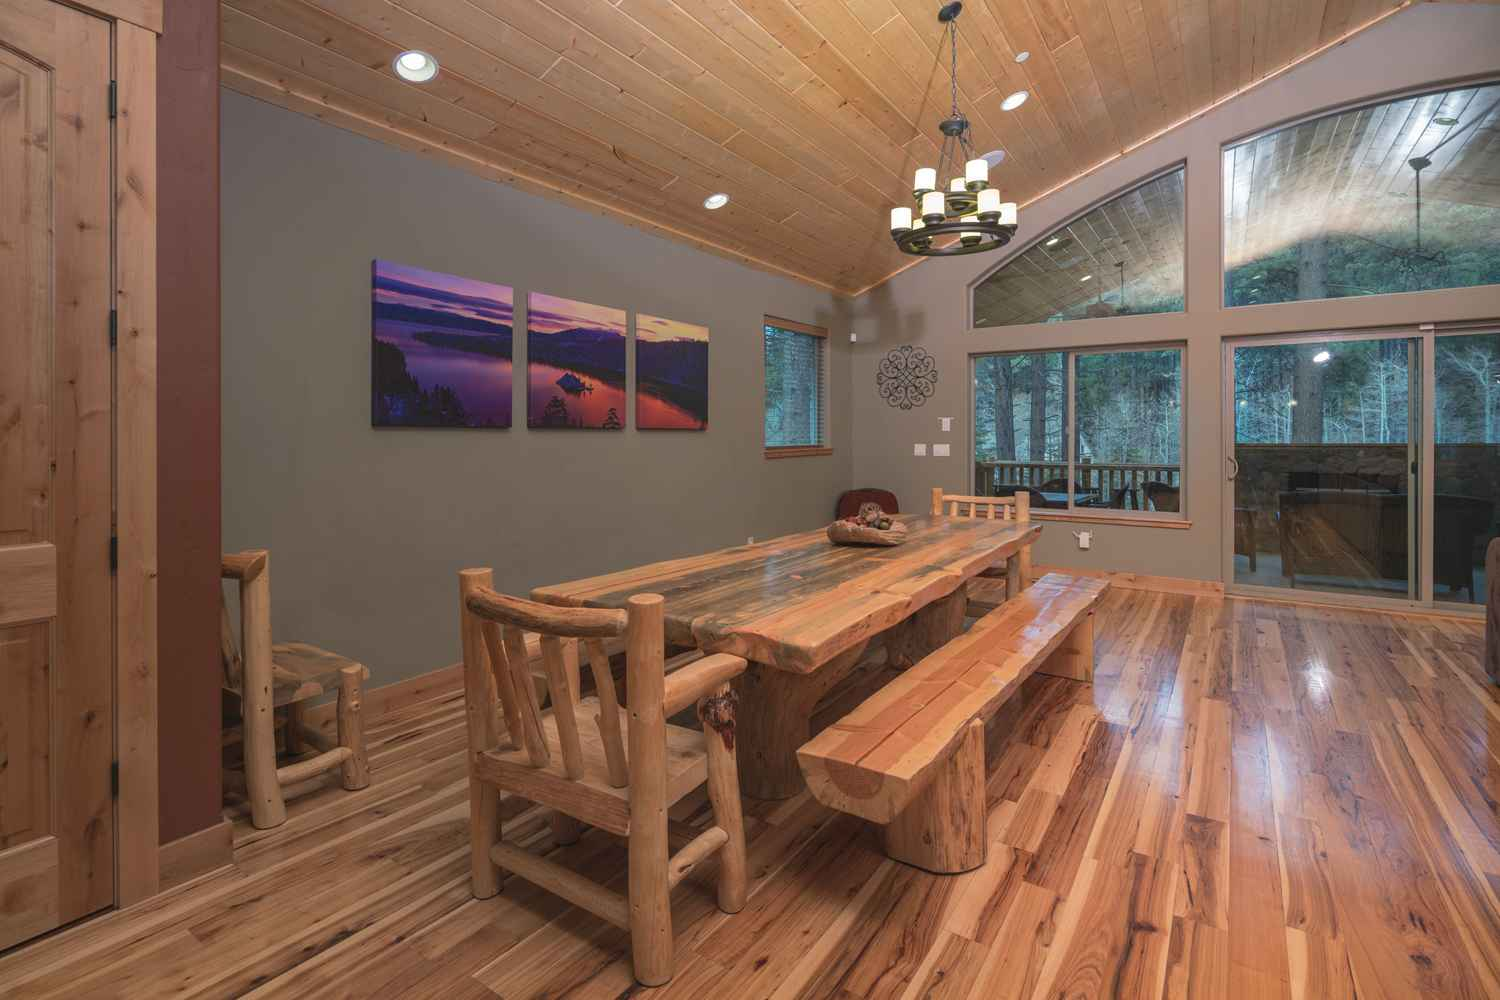 South lake tahoe california vacation rental 7 bedroom 8 for Mansion house plans with indoor pool